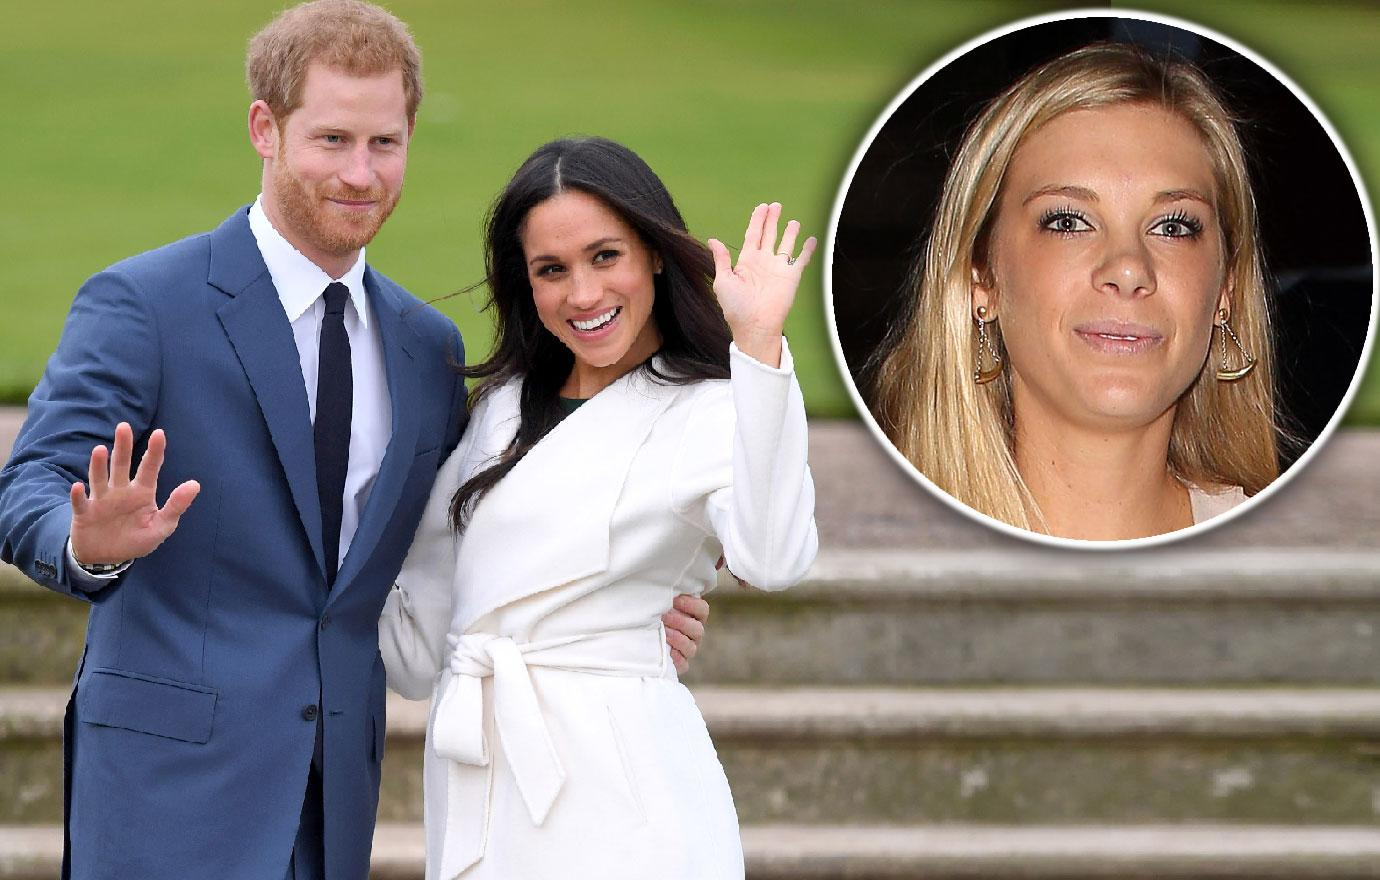 Chelsy Davy Moves On After Prince Harry's Engagement To Meghan Markle